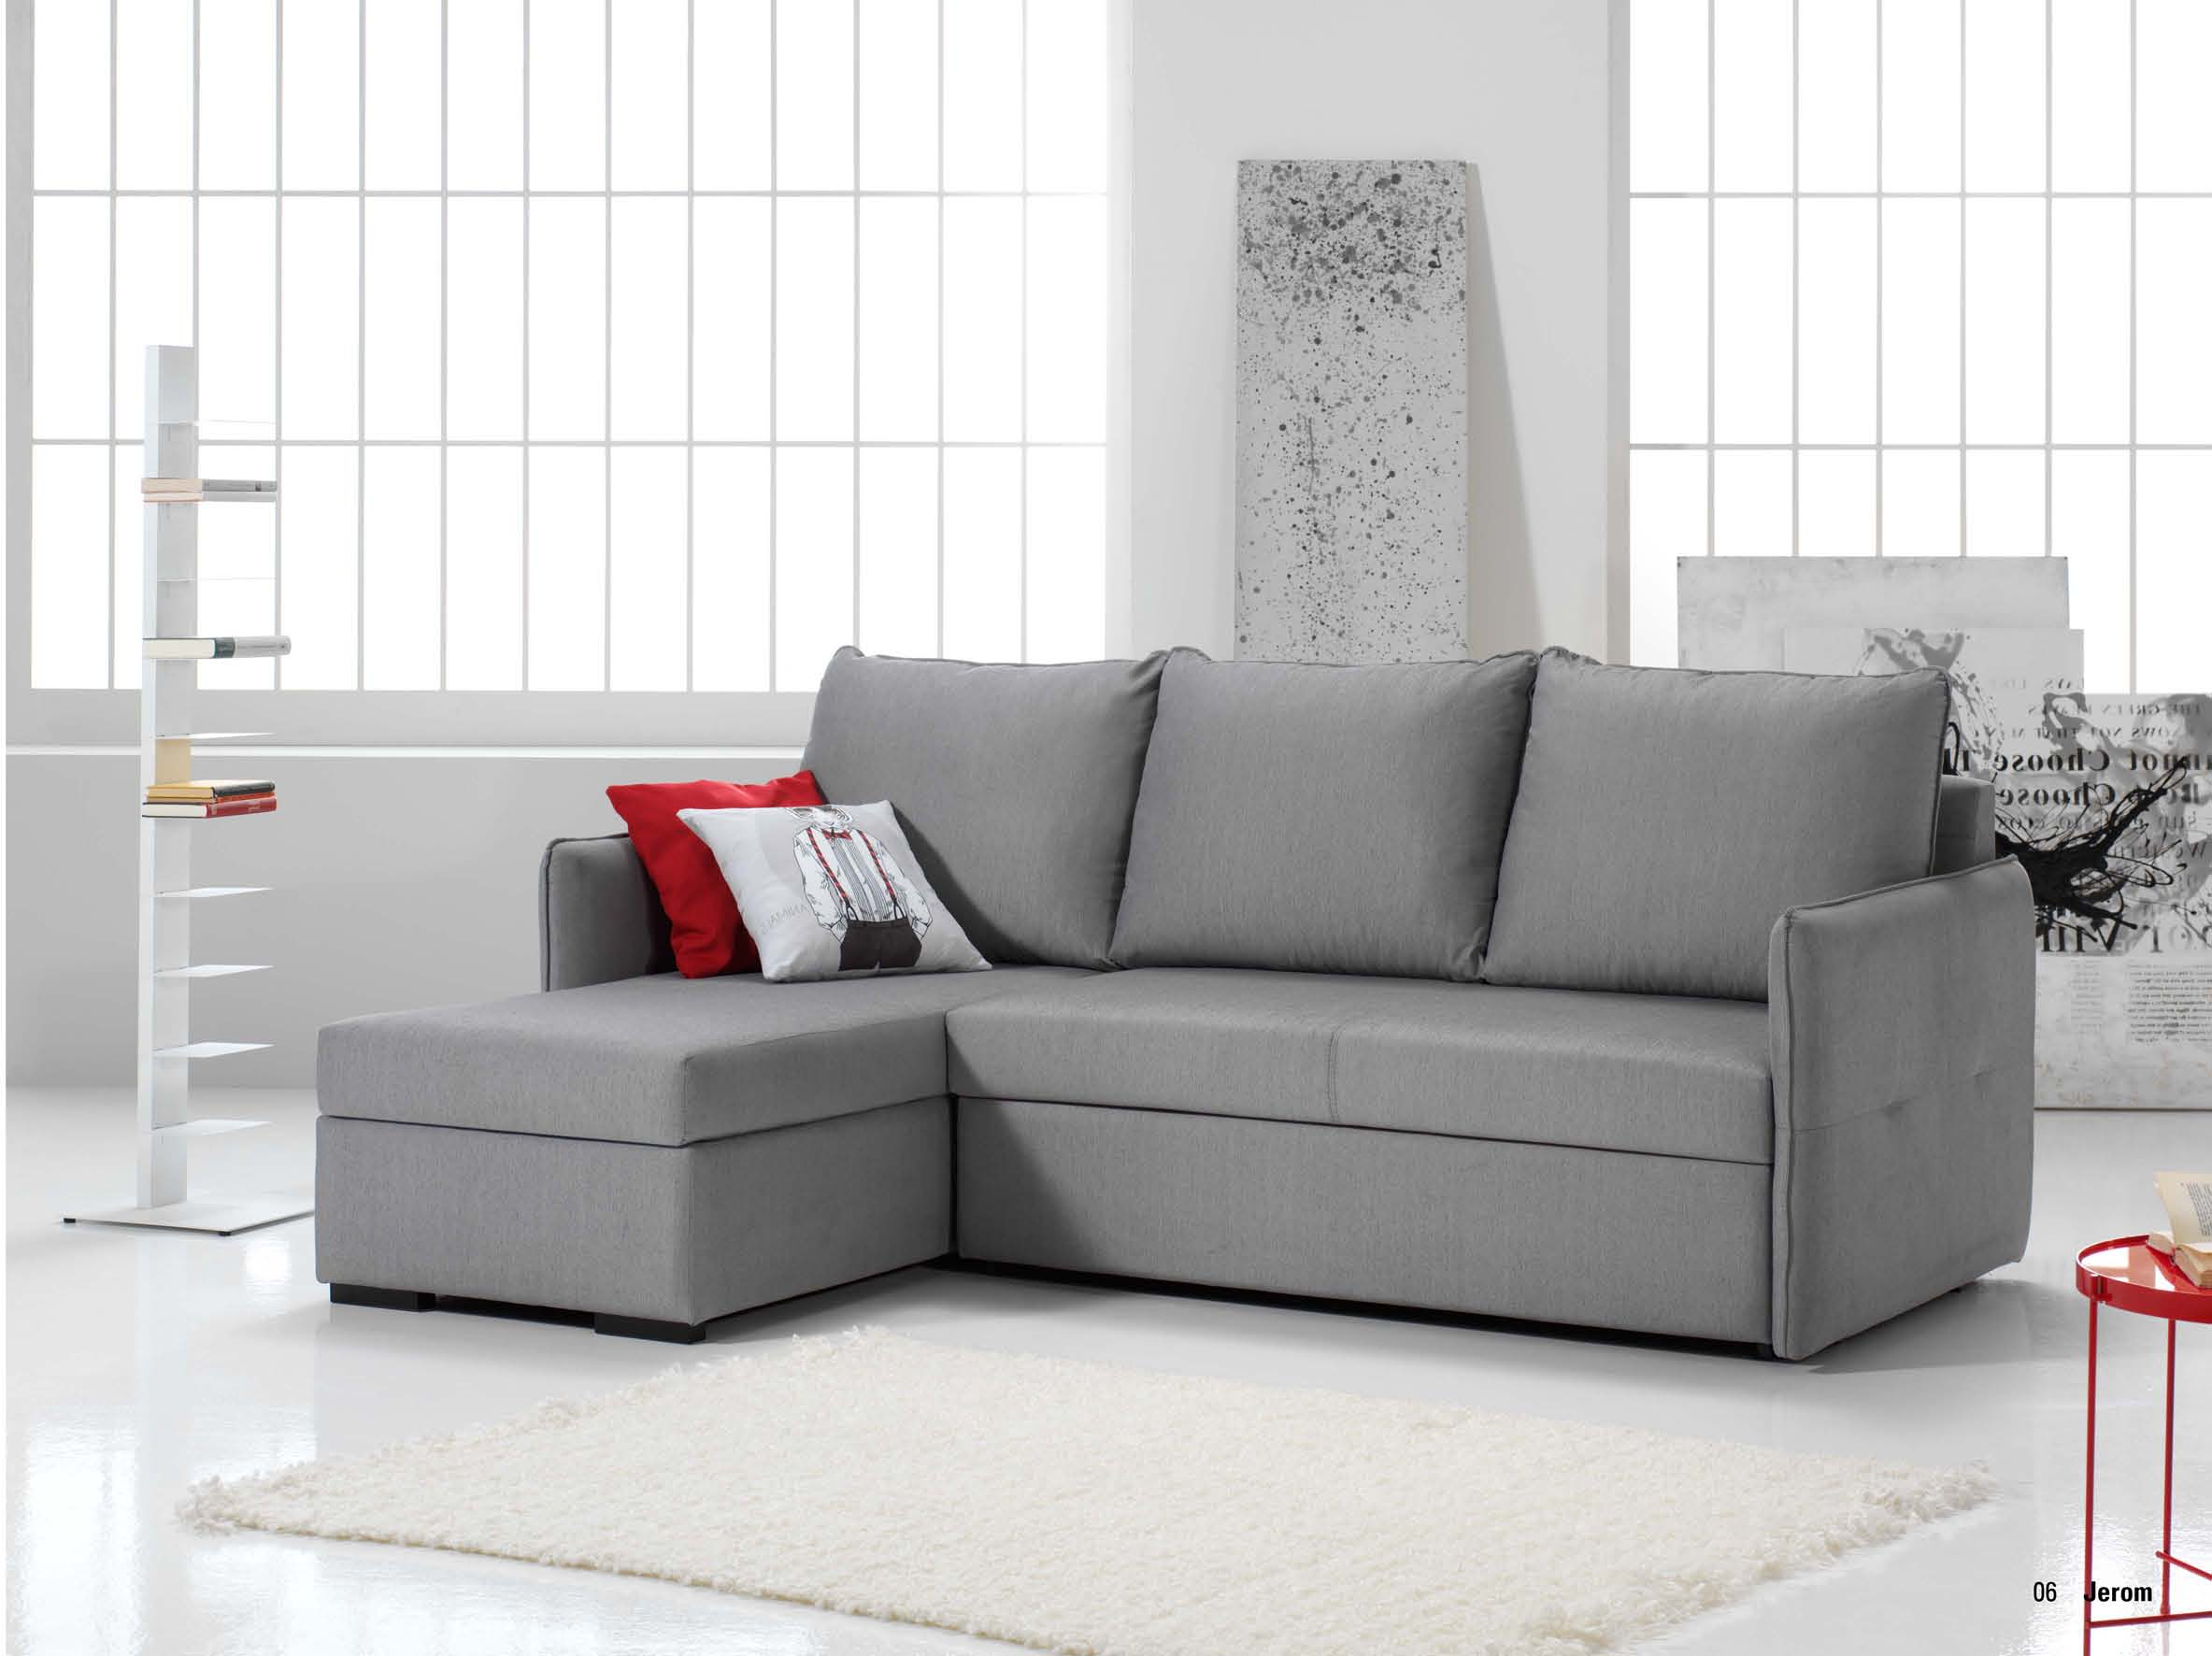 Sof cama chaisse longue con arc n muebles adama tienda for Sofa con chaise longue